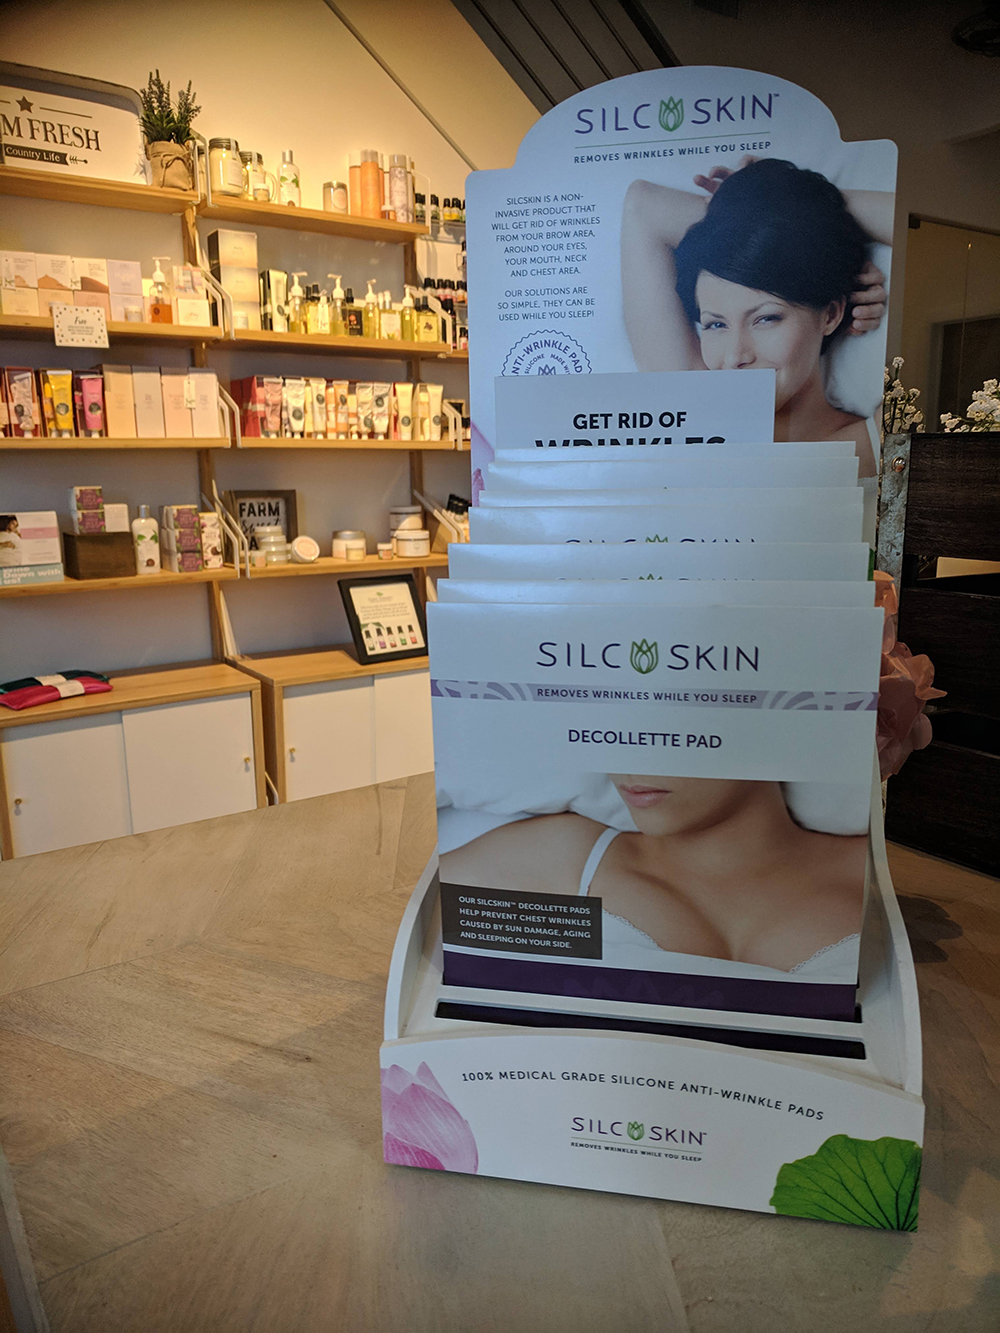 Silc Skin is available in the retail lobby along with many other brands including FarmHouse Fresh, DoTerra, Image Skin Care, M'lis, and more.